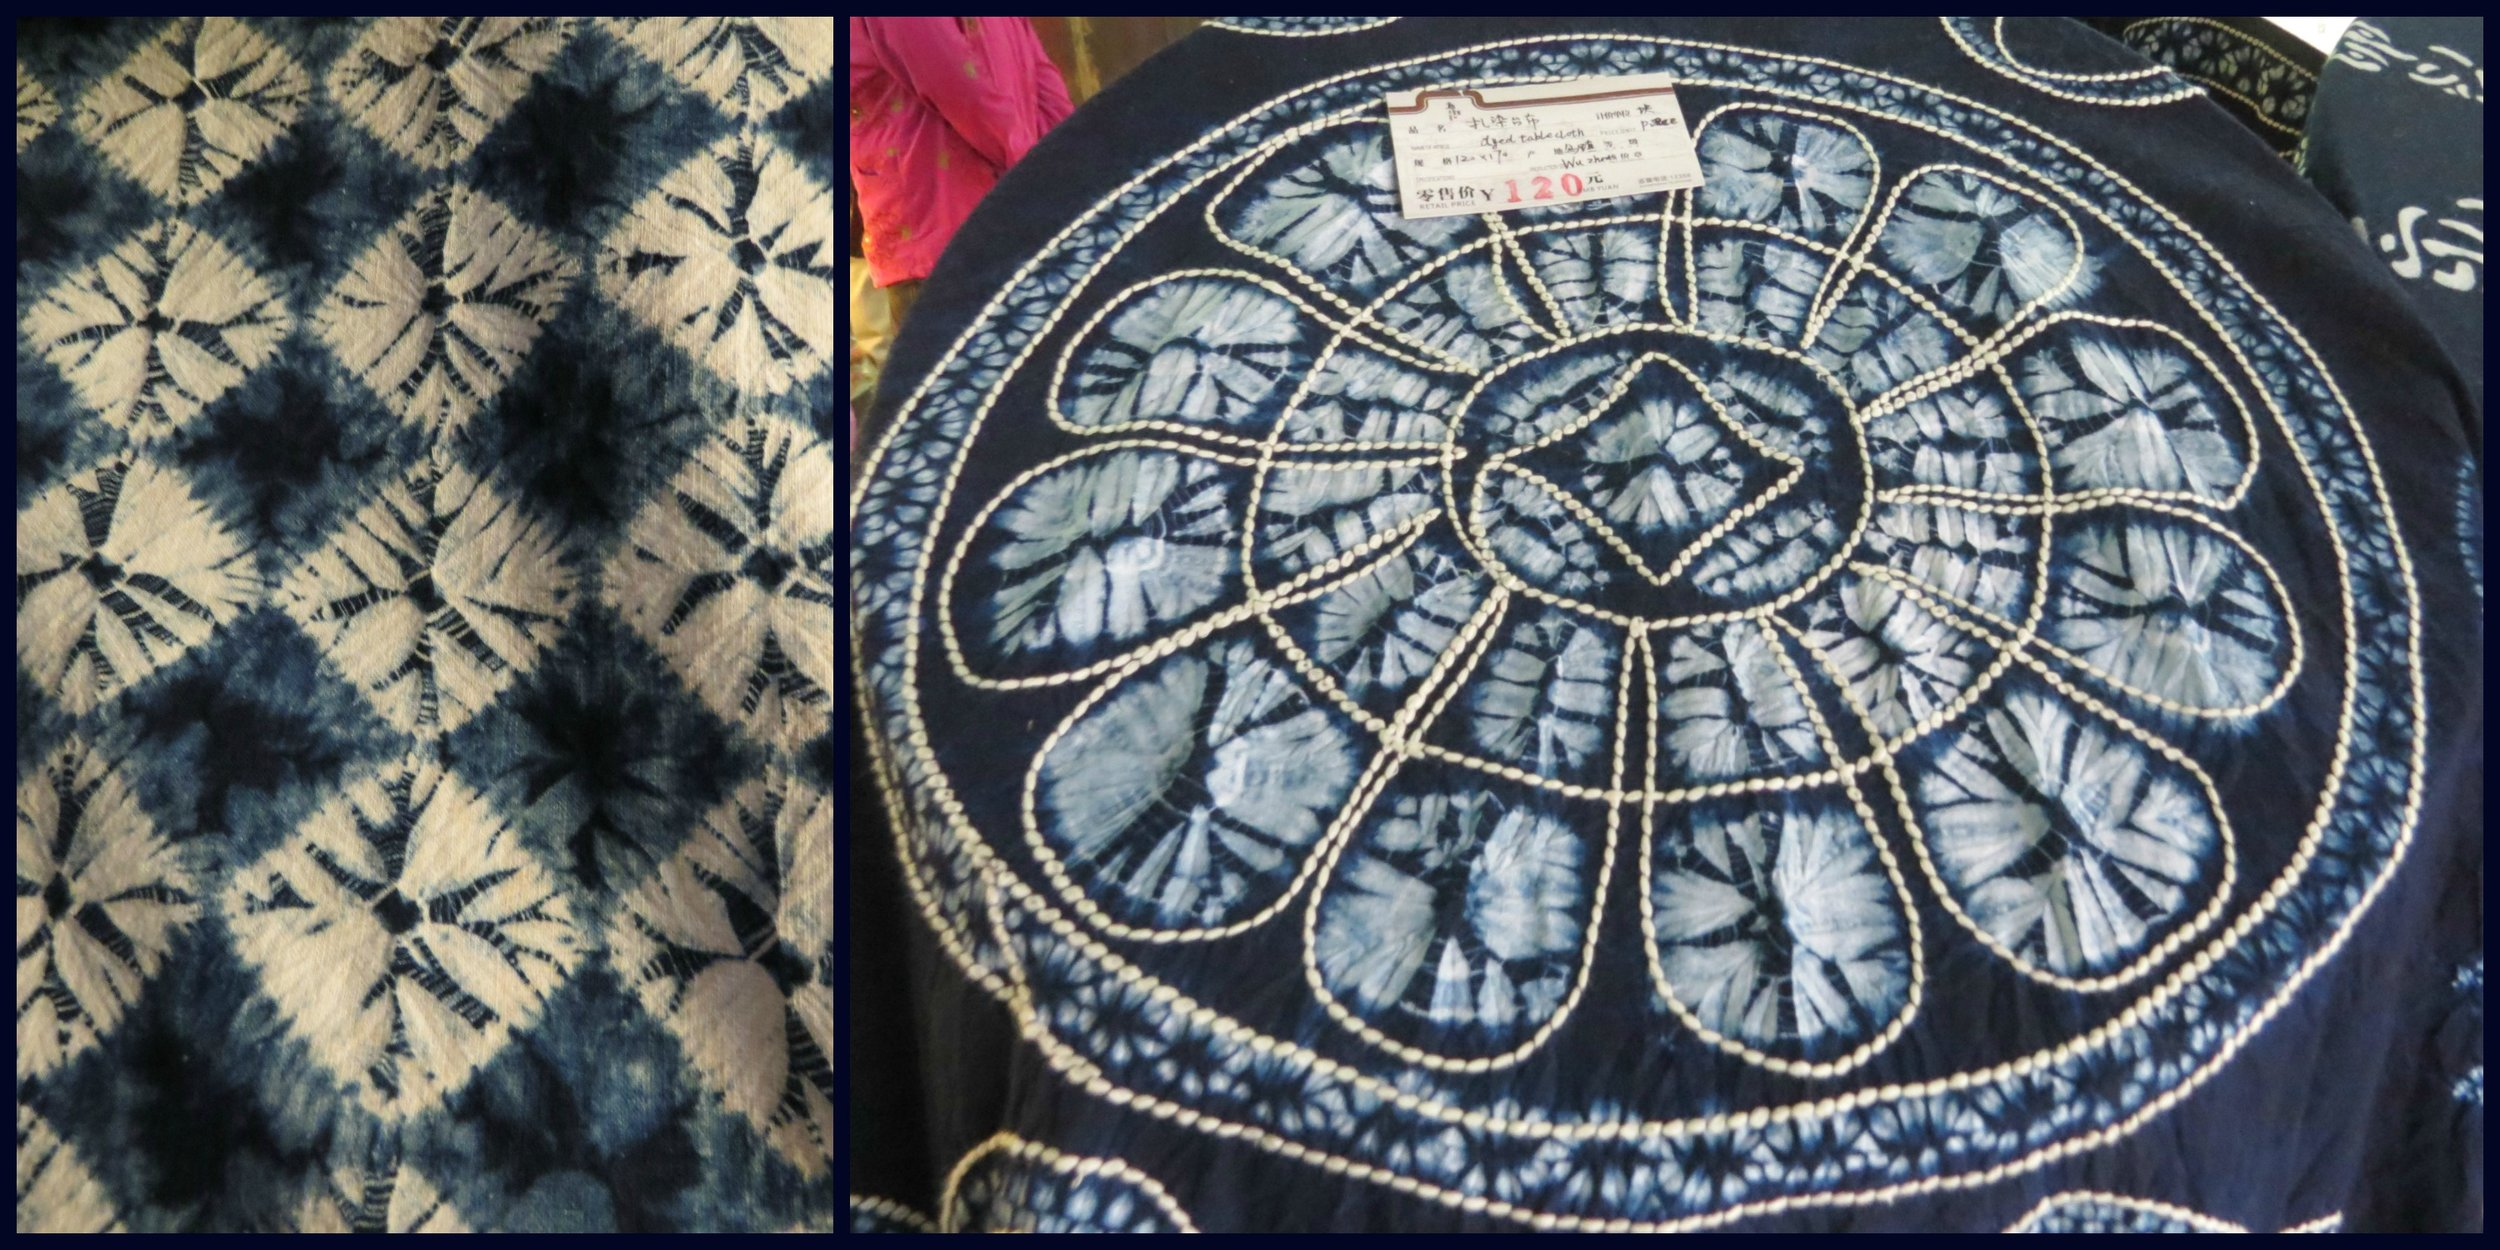 Tie-dye Method, the second photo shows a tablecloth made with the Chinese Ethic style including embroidery embellishment